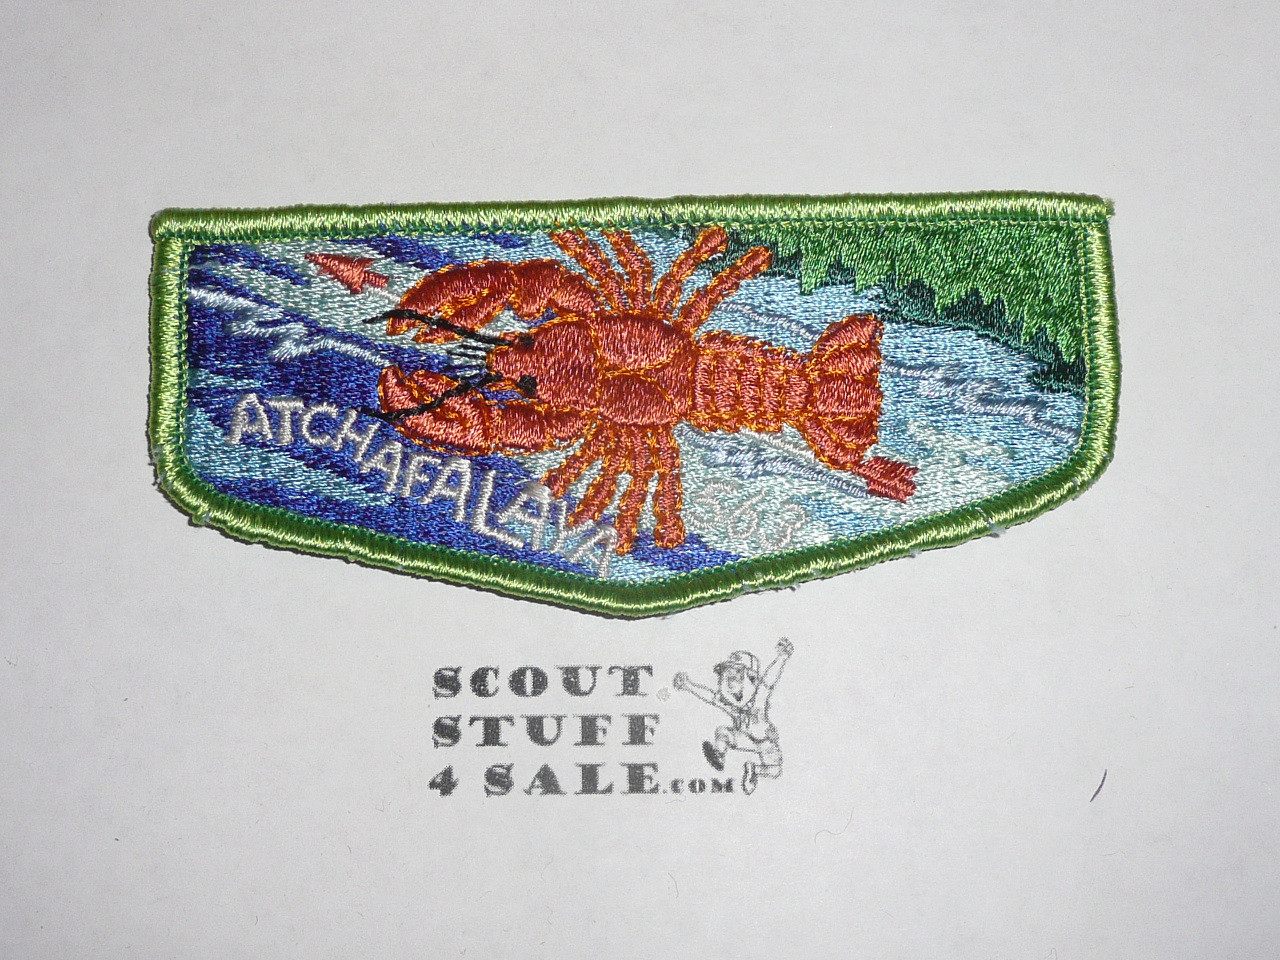 Order of the Arrow Lodge #563 Atchafalaya s7 Flap Patch